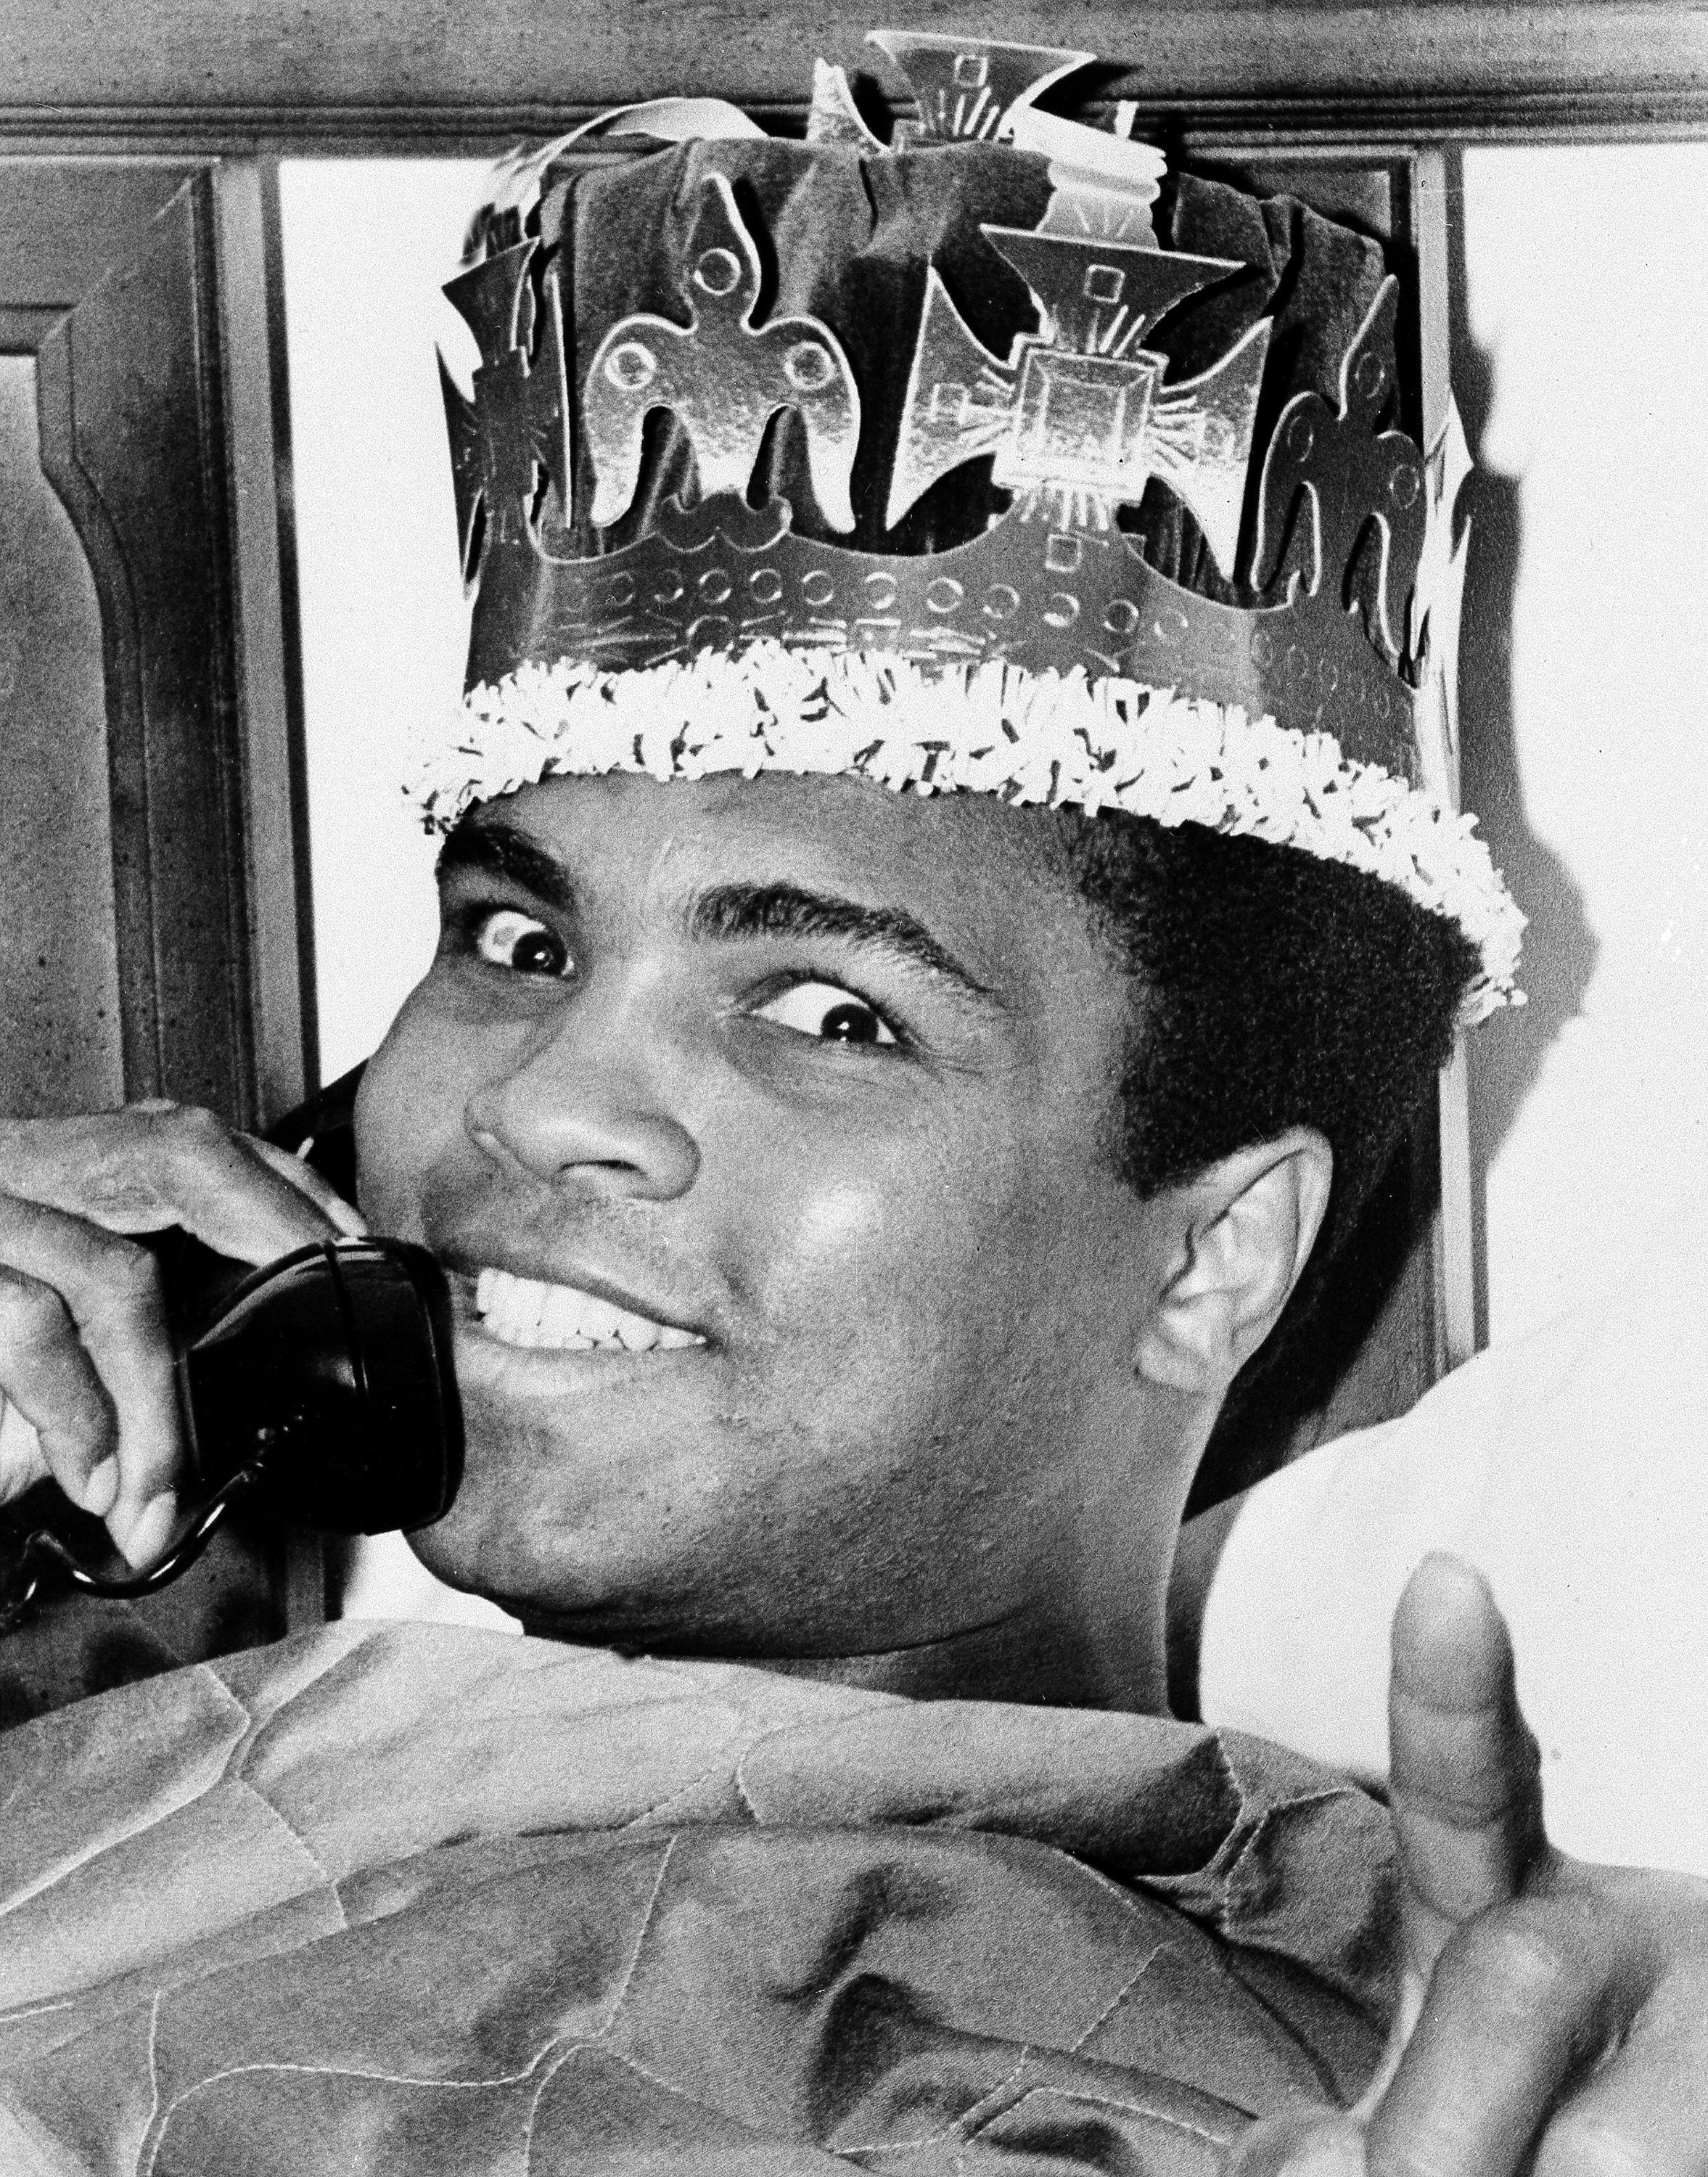 When tensions were high in heavyweight boxing, Muhammad Ali really was the king of the ring